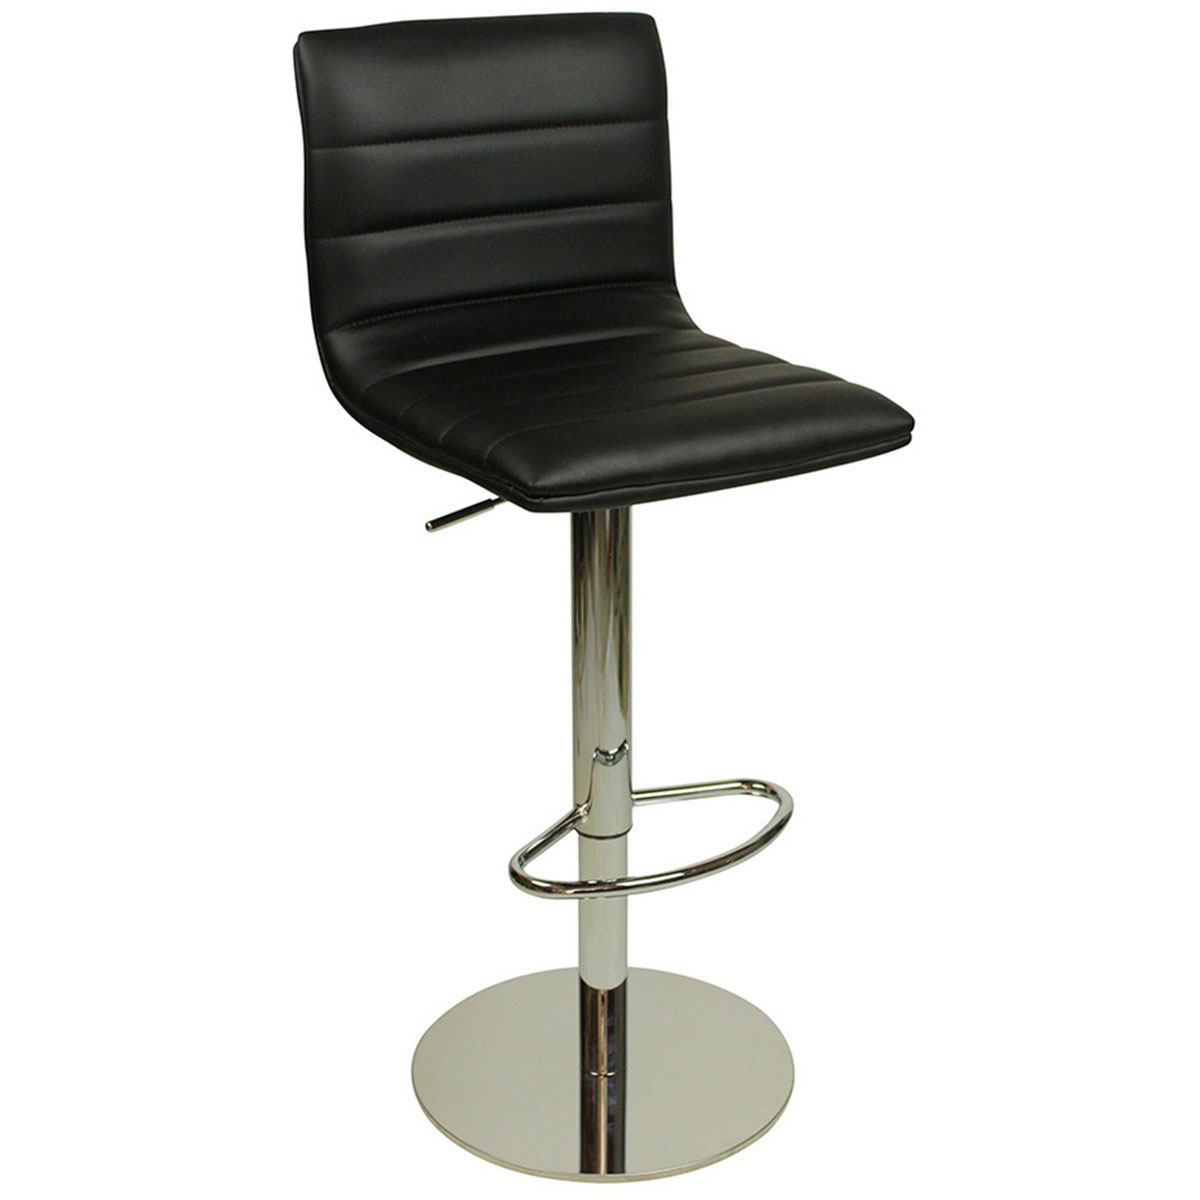 Deluxe Aldo Bar Stool - Black Product Image